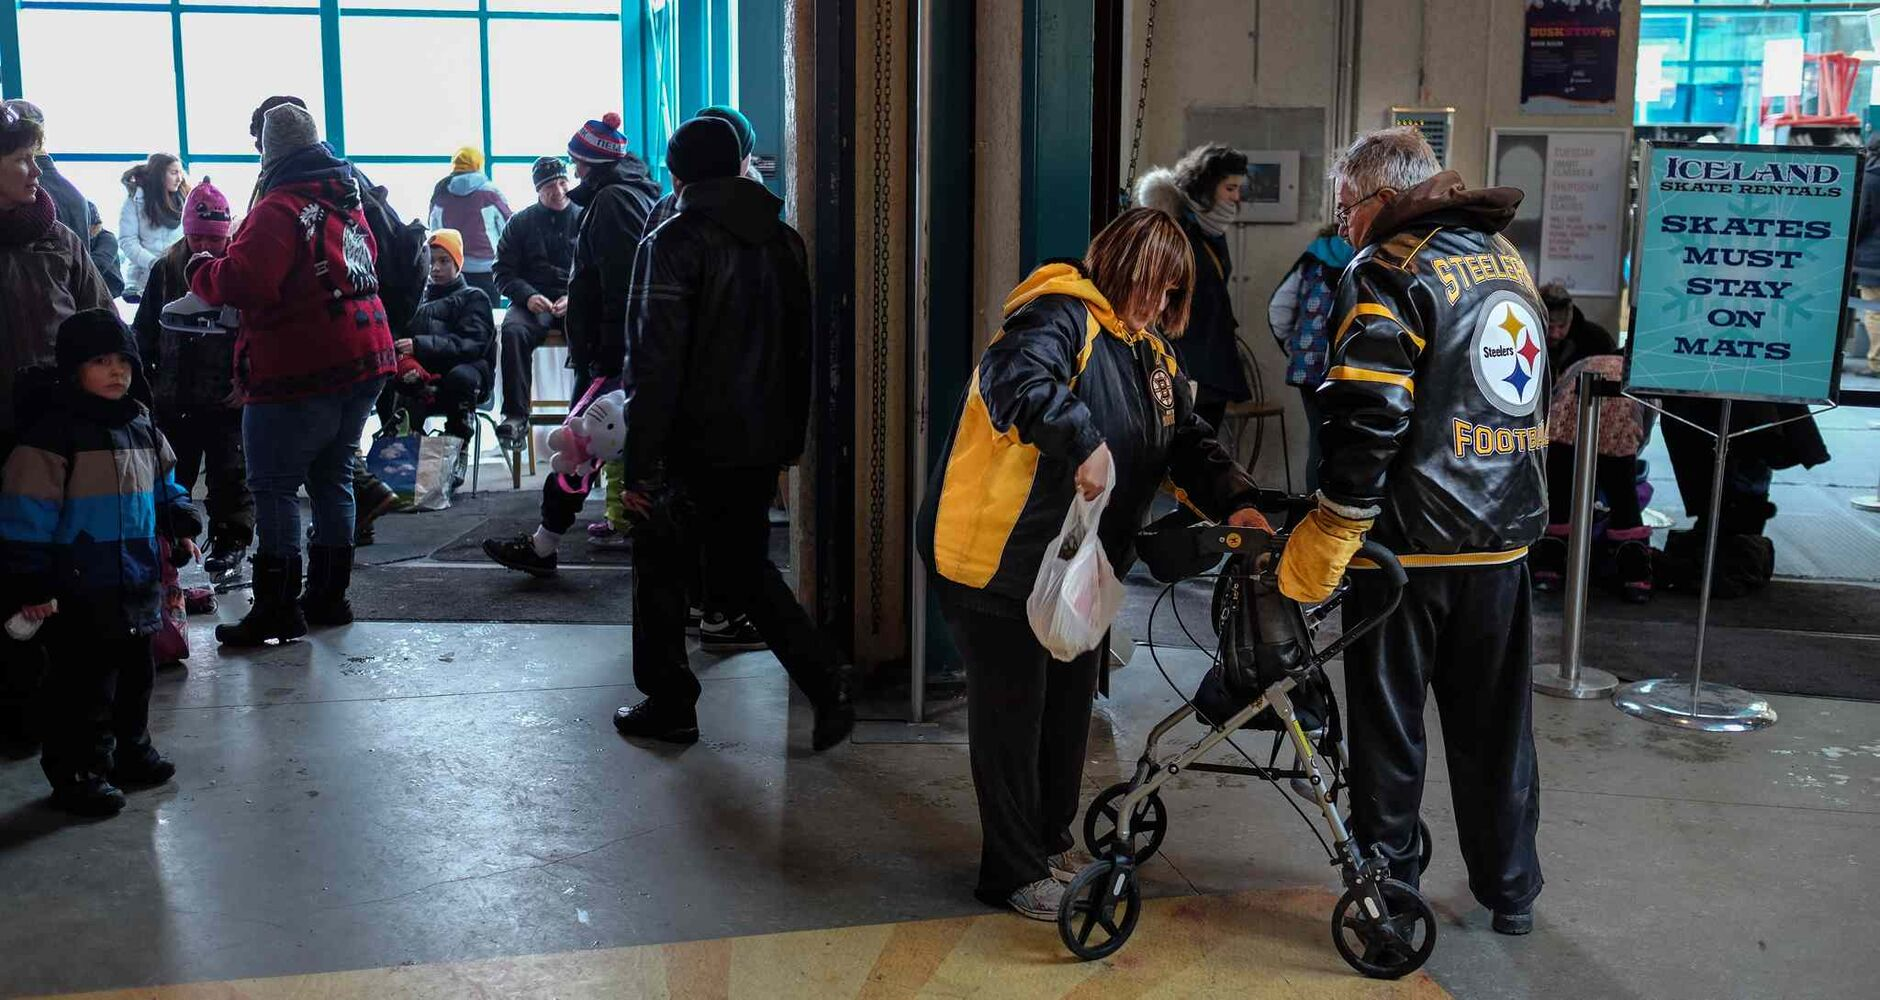 Getting reading to head back out into the cold for a walk down to the river while at The Forks. MIKE DEAL / WINNIPEG FREE PRESS